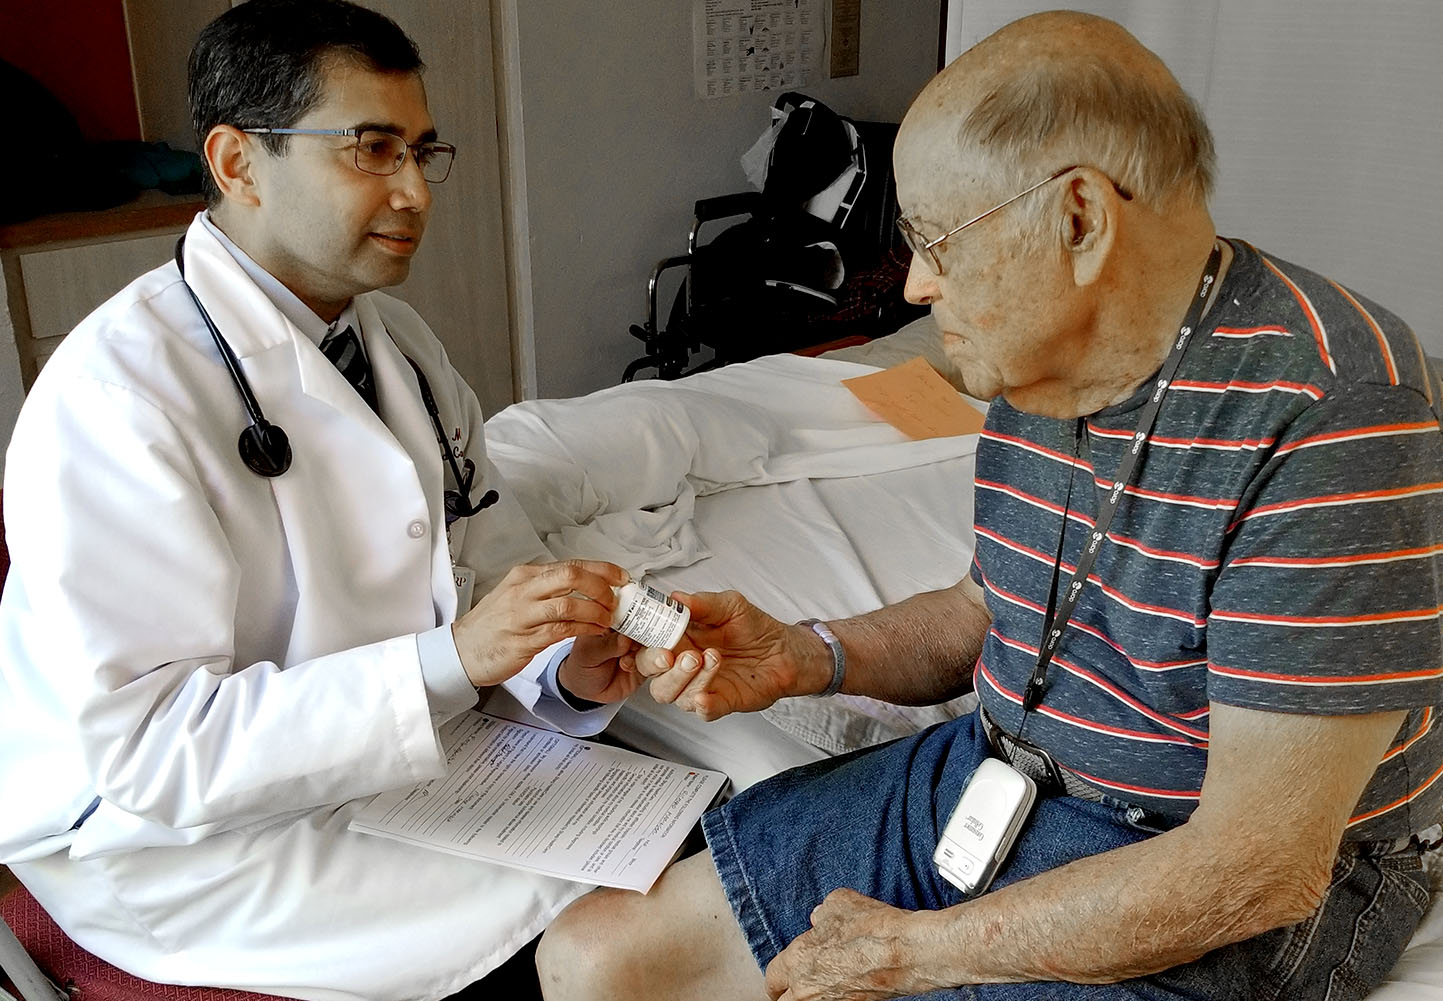 Dr. Parag Agnihotri with patient is Richard Maringer at Sharp Rees-Stealy Medical Group in San Diego.